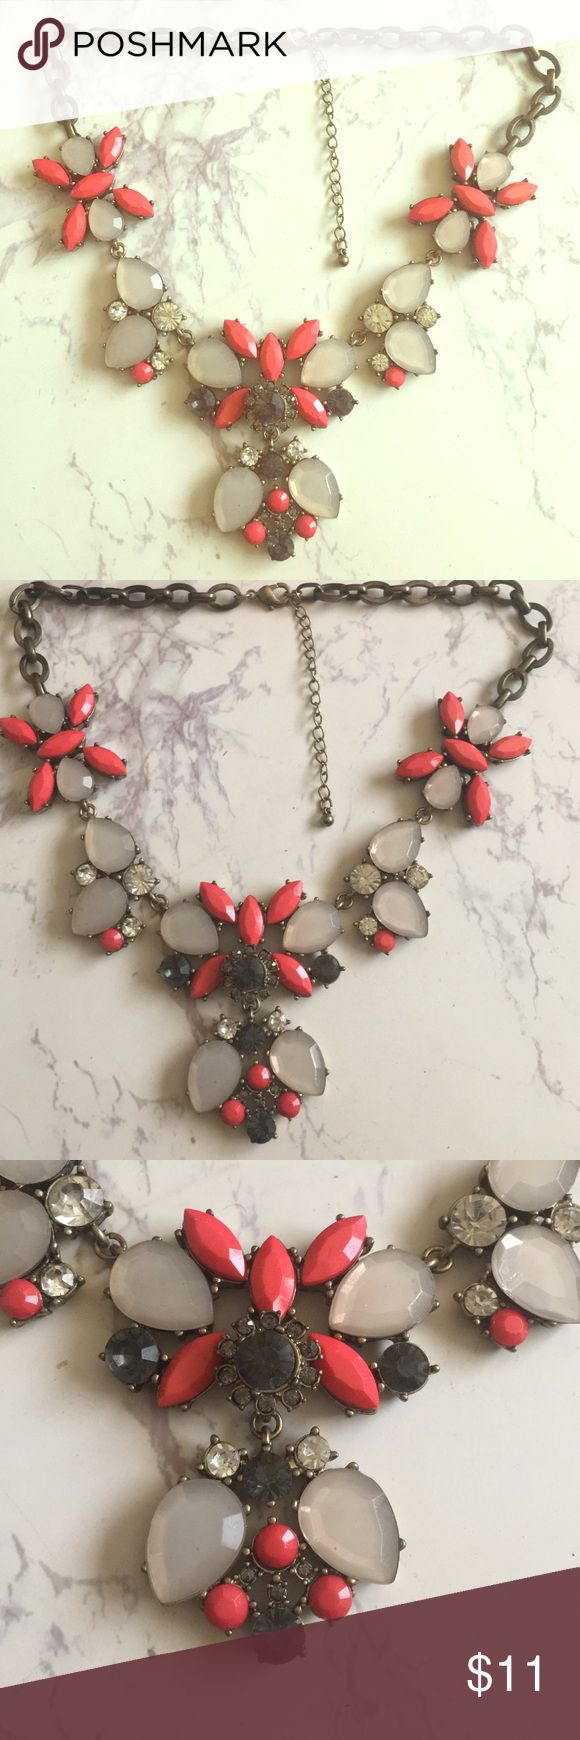 Coral Statement Necklace Coral statement necklace with brushed gold chain Jewelry Necklaces